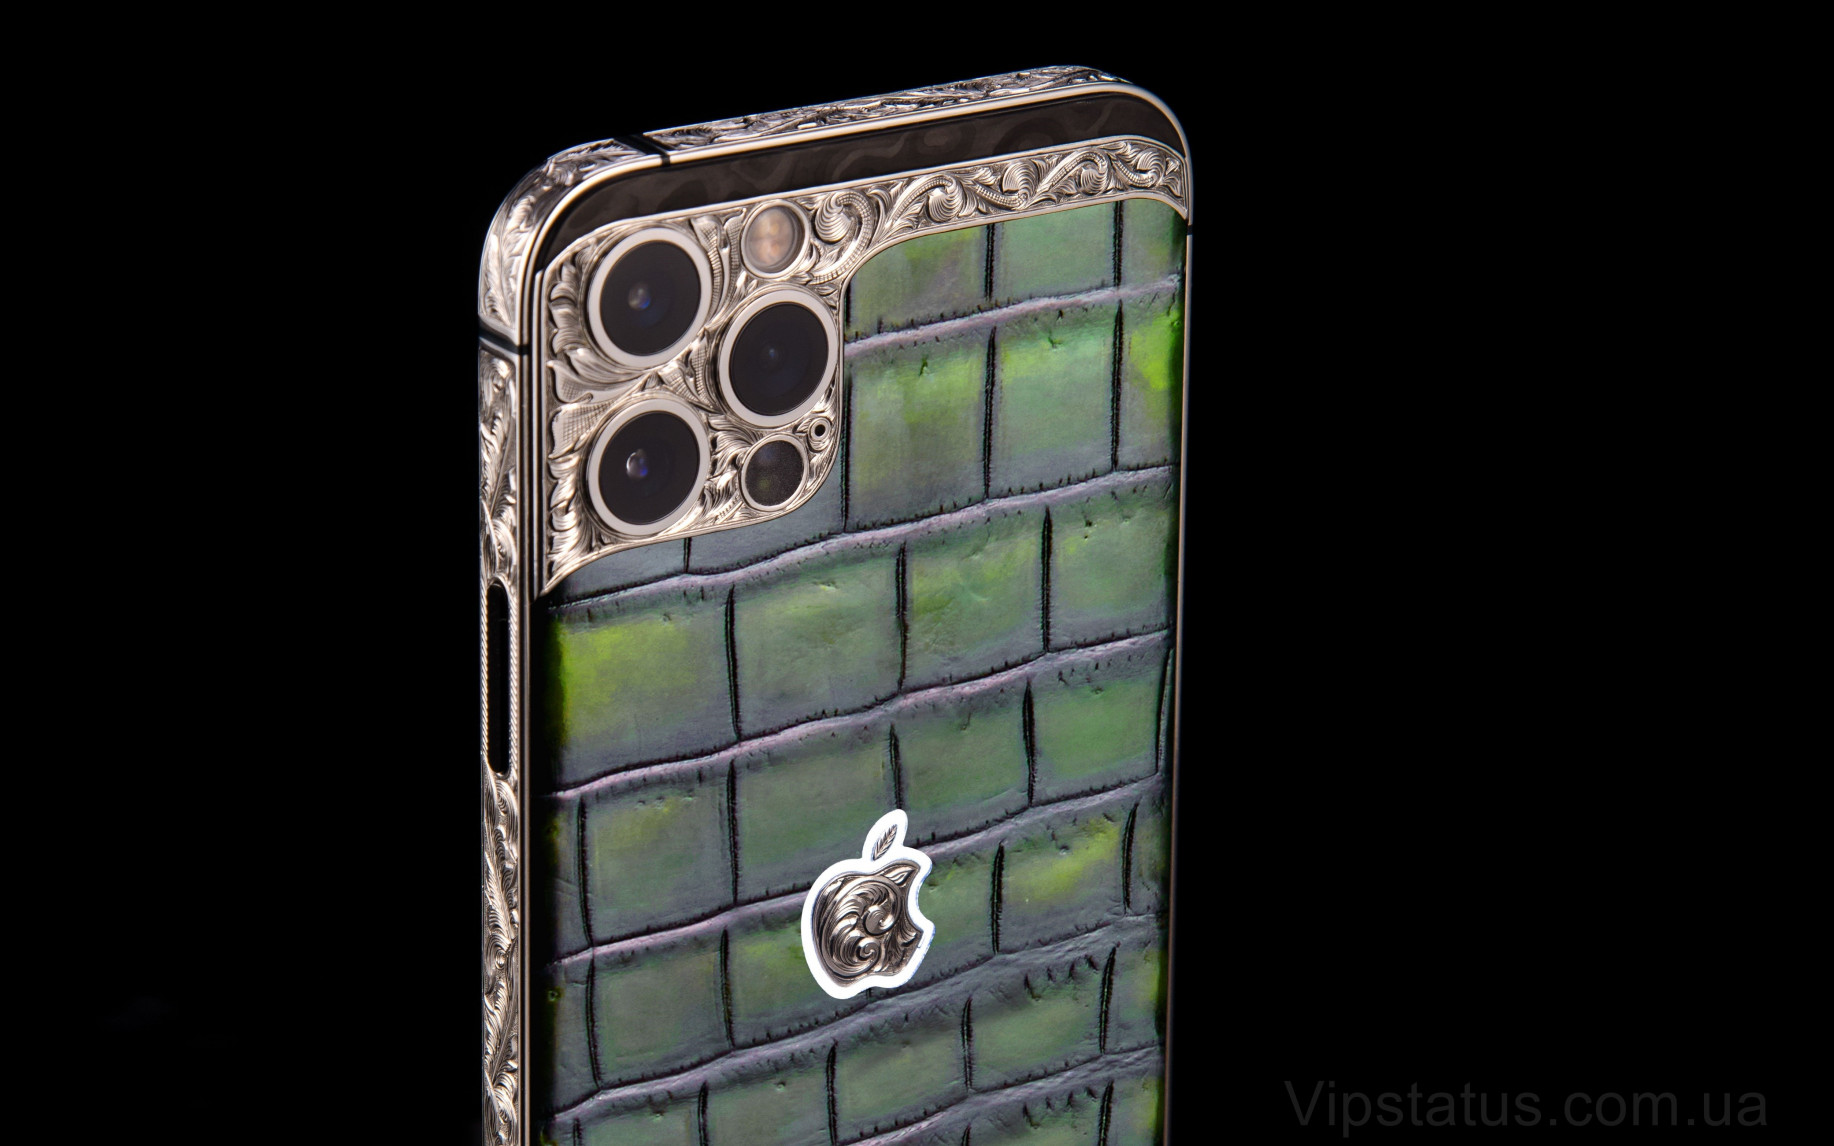 Elite Vintage Eastern Emerald IPHONE 12 PRO MAX 512 GB Vintage Eastern Emerald IPHONE 12 PRO MAX 512 GB image 8